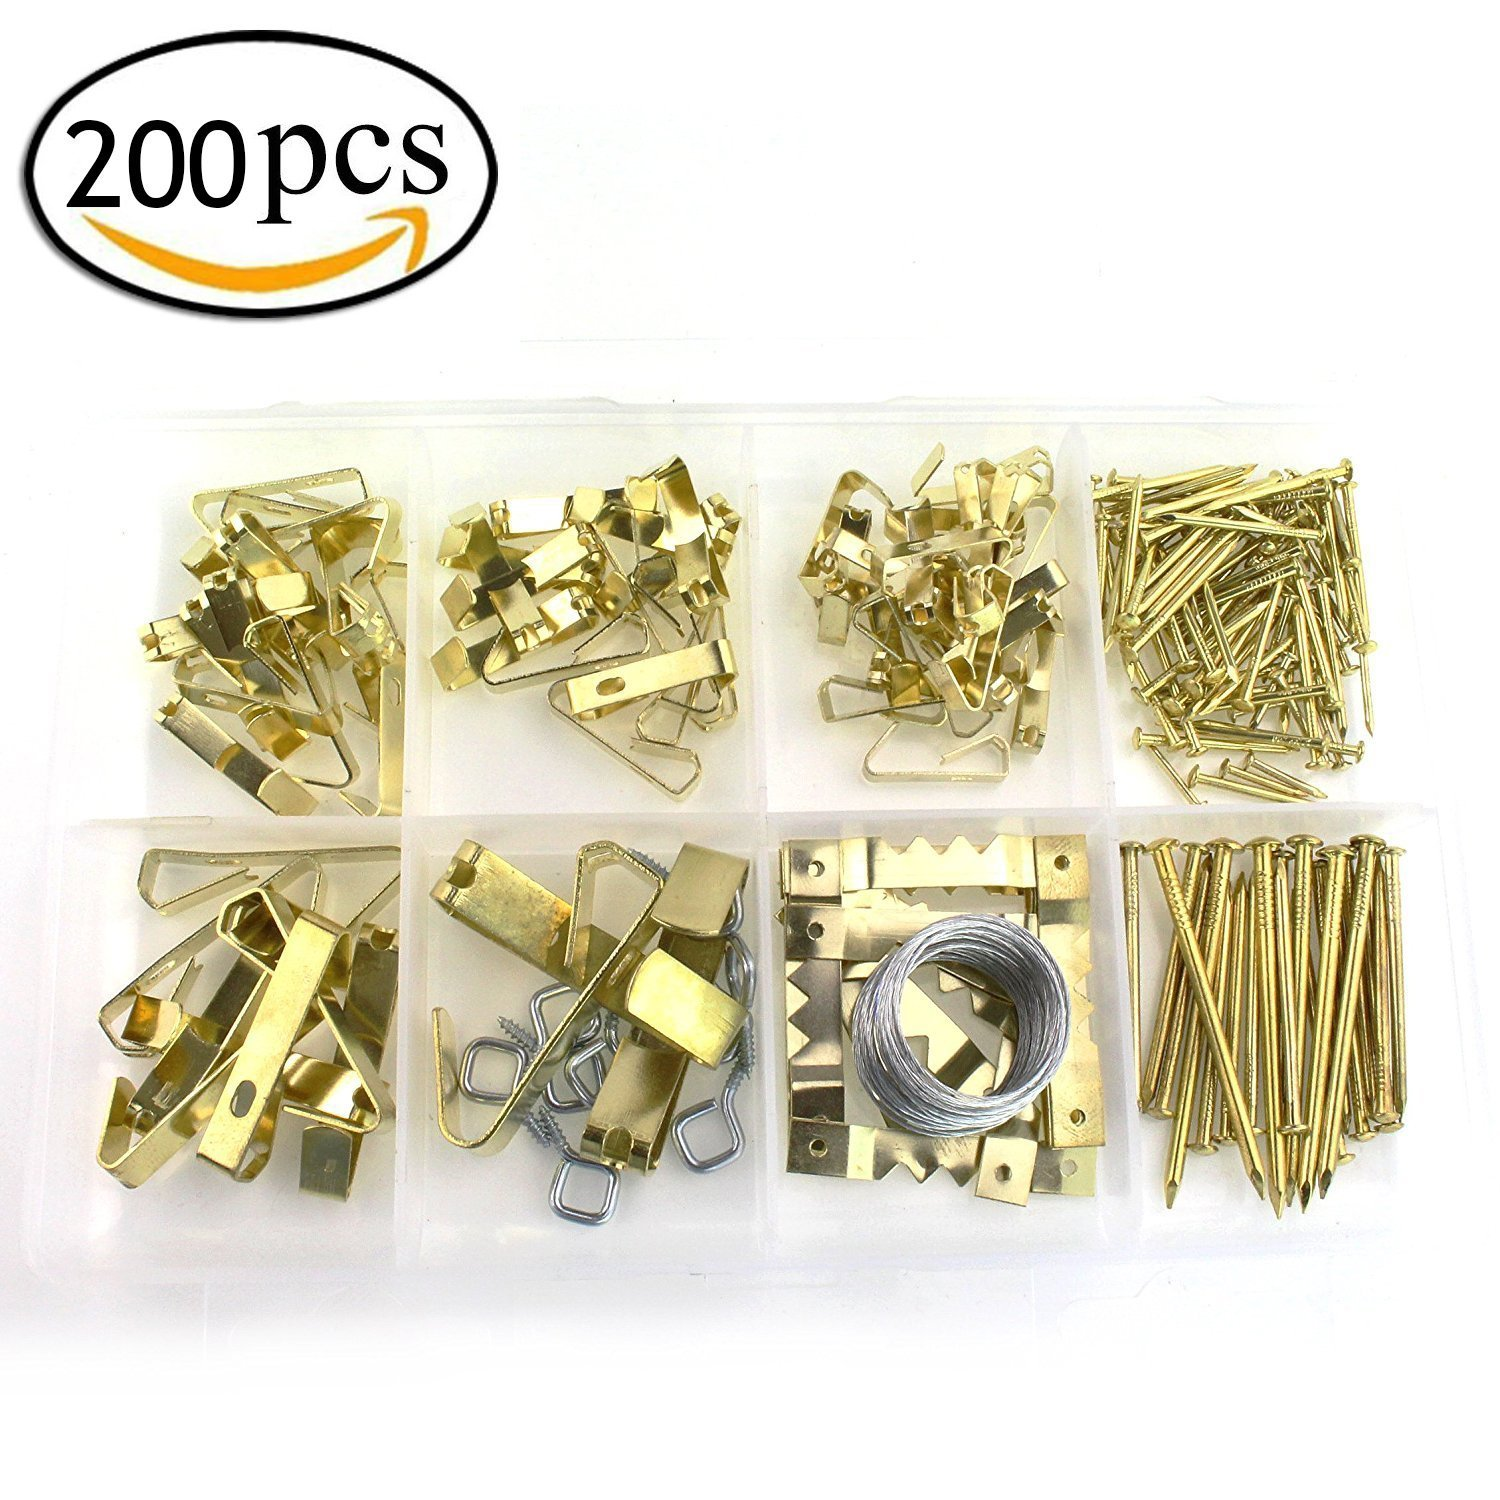 Assorted Picture Hanging Kit Heavy Duty Assortment with Wire, Picture DIY Hangers, Hooks, Nails and Hardware for Frames (200 PCS)